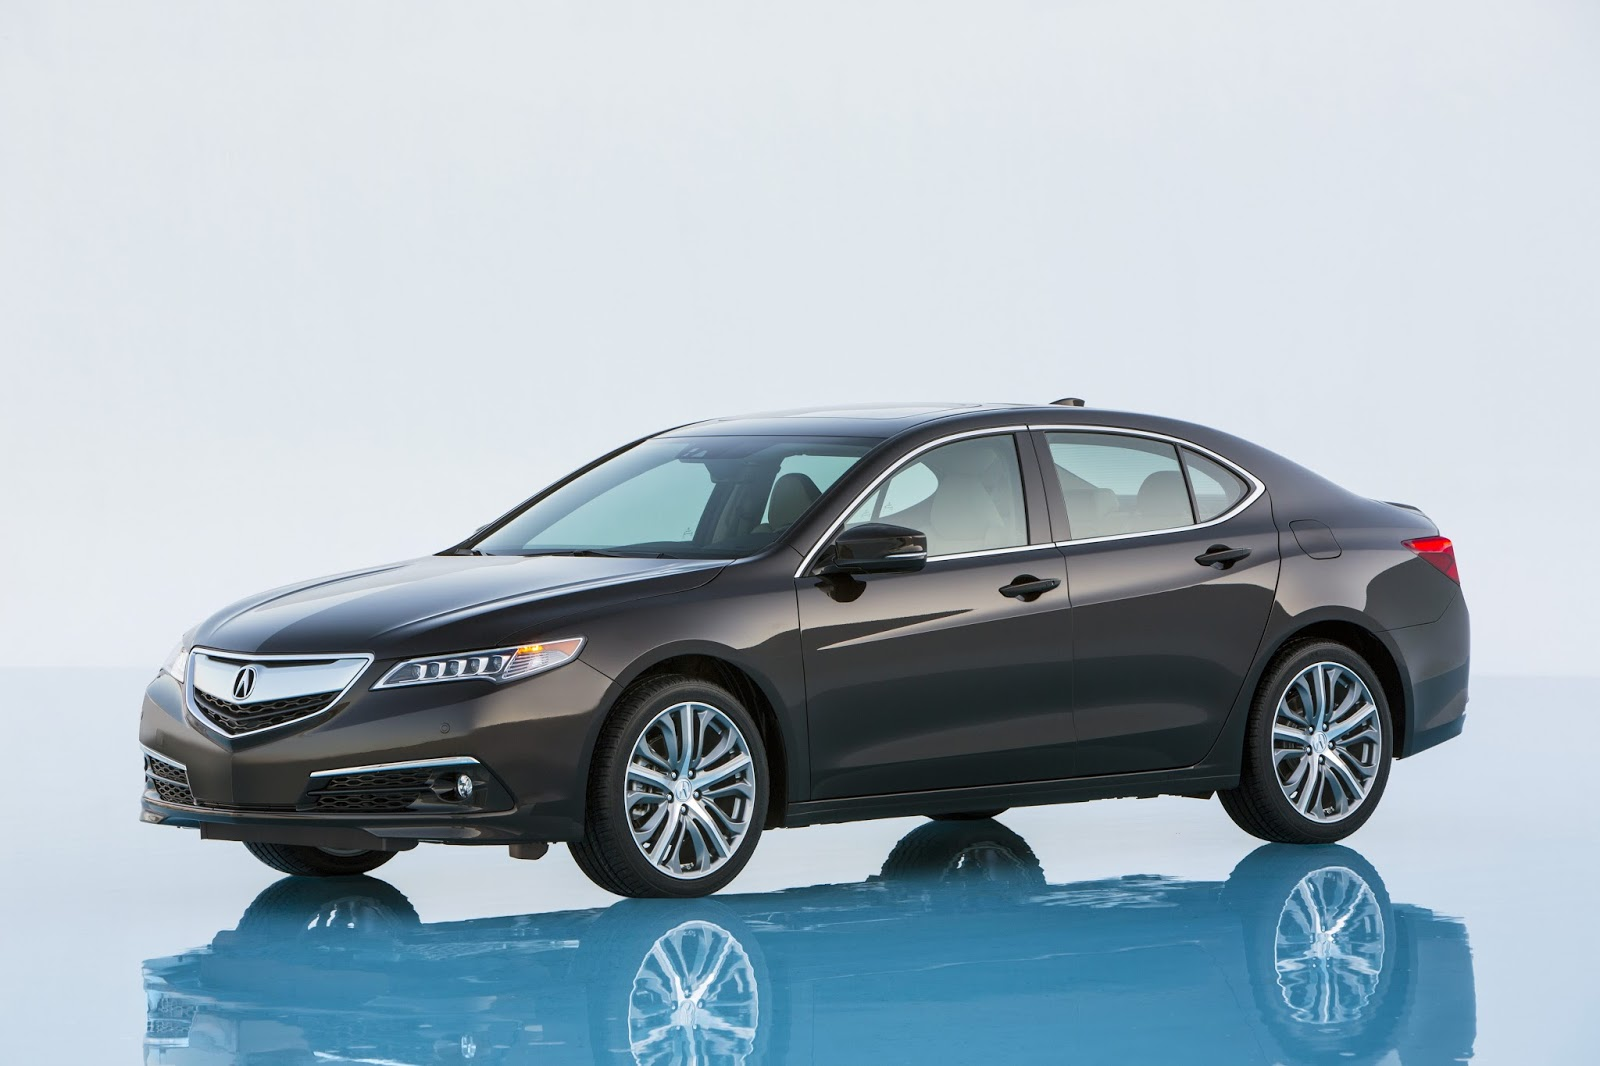 2014 - [Acura] TLX - Page 2 Acura-2015-TLX-3